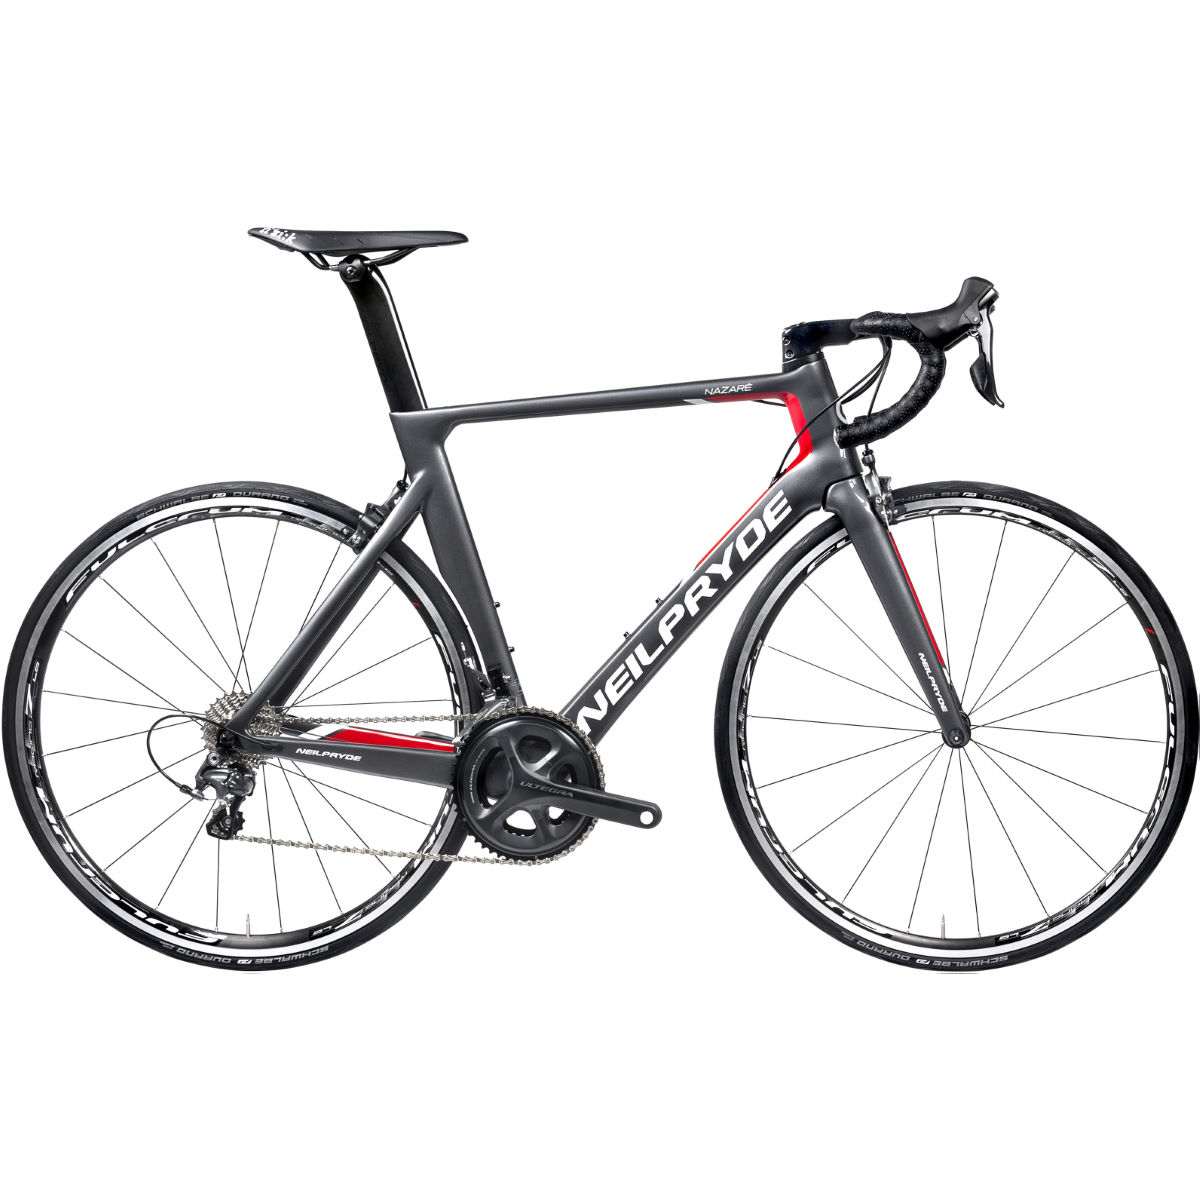 Vélo de route NeilPryde Nazare (Ultegra, 2017) - Small Stock Bike